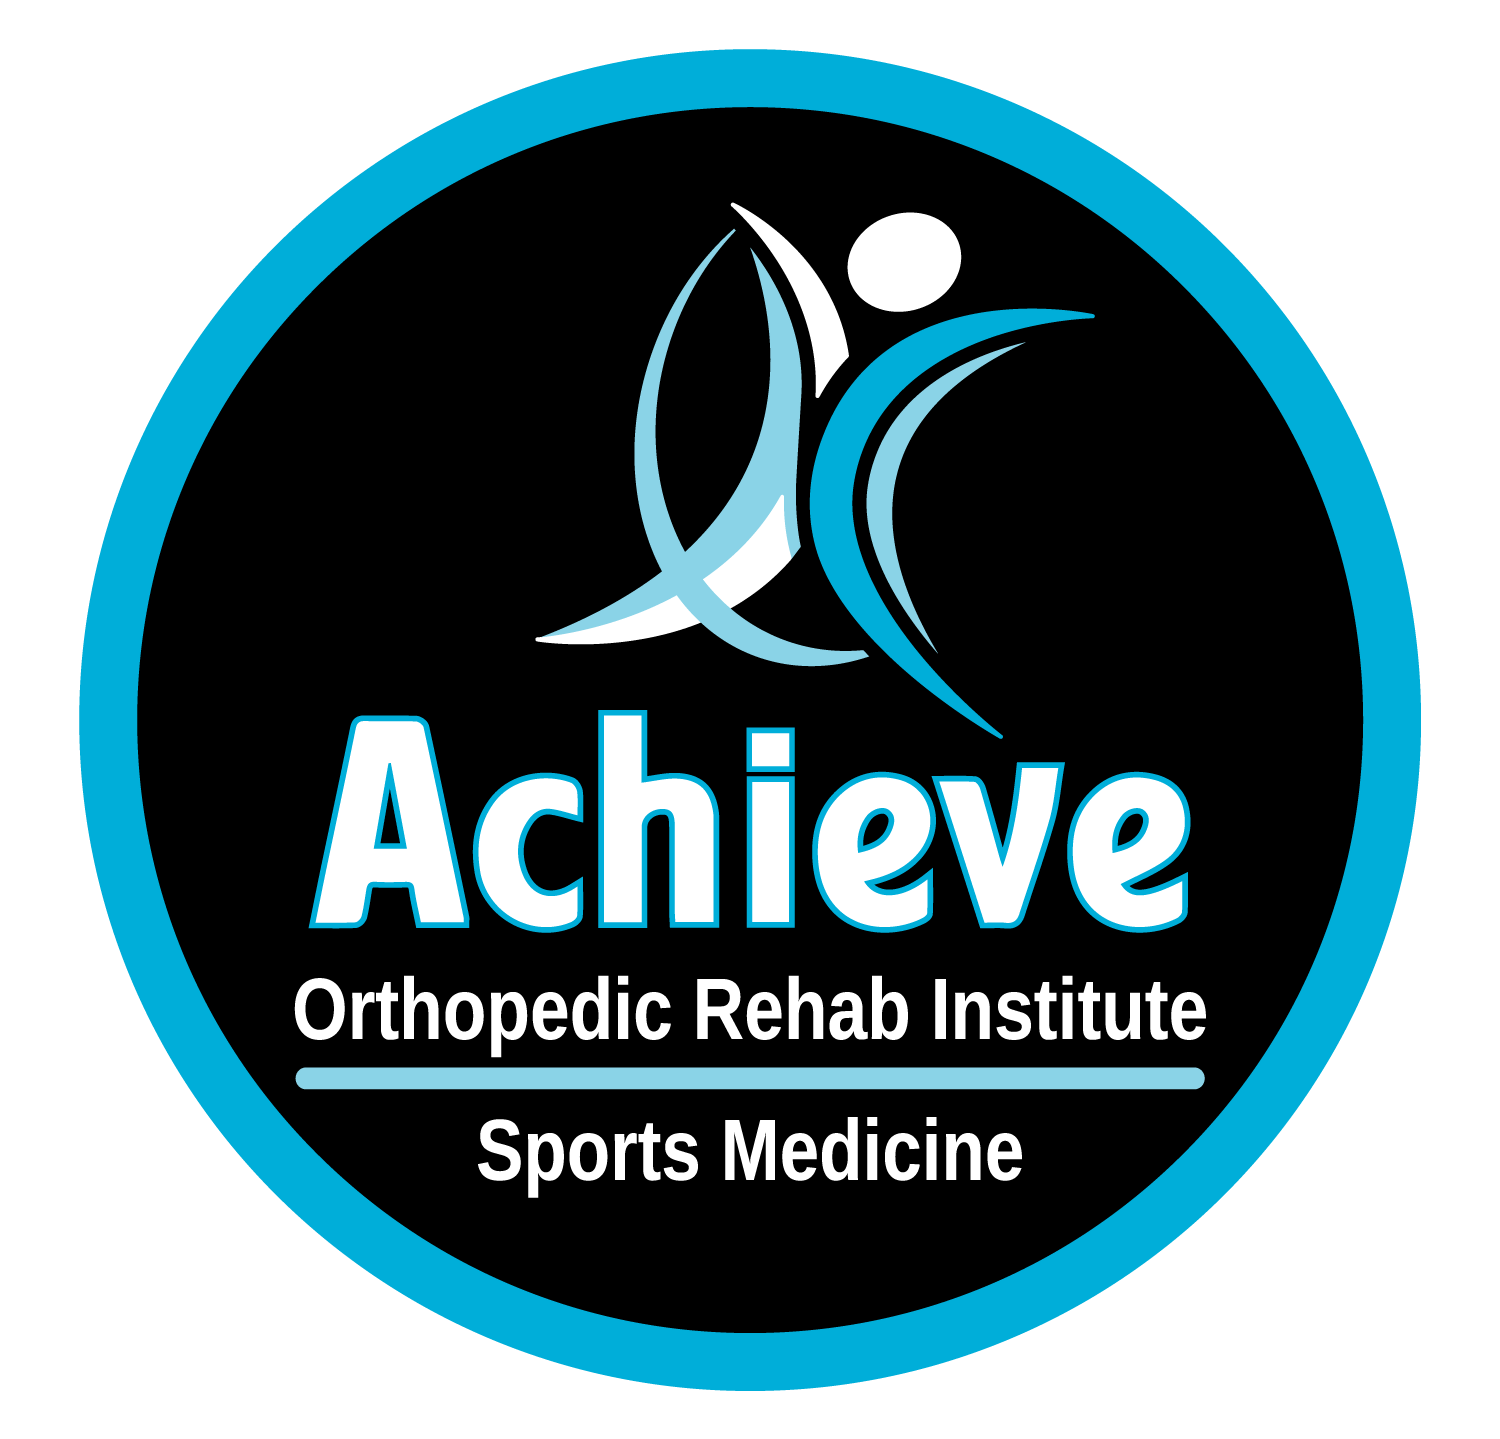 Achieve Orthopedic Rehab Institute